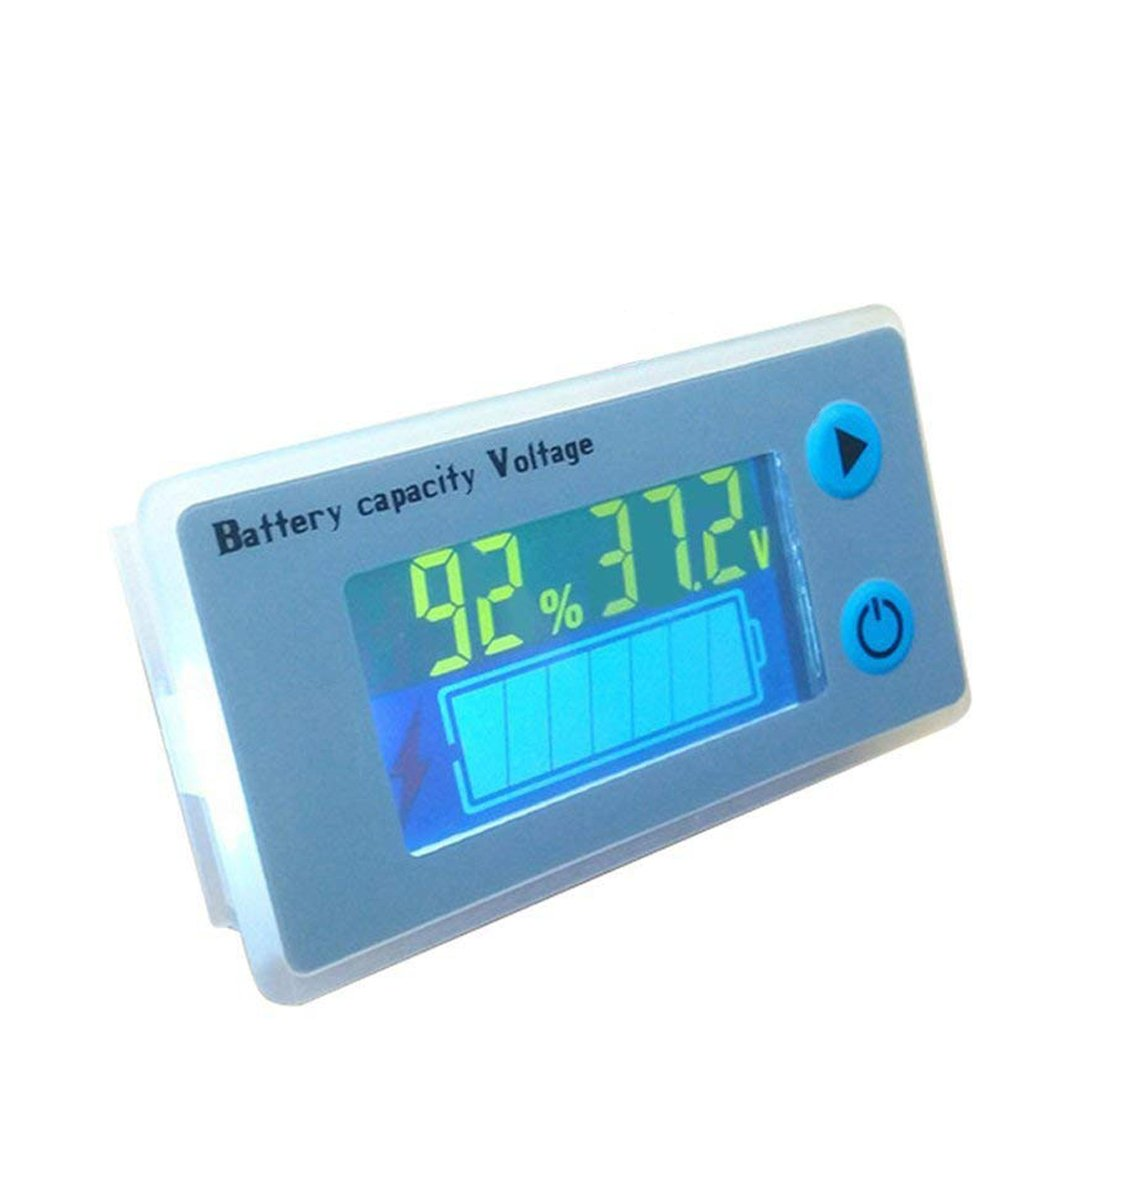 Multifunction 36V LCD Lead Acid Battery Capacity Meter Voltmeter with Temperature Display Battery Fuel Gauge Indicator Voltage Monitor